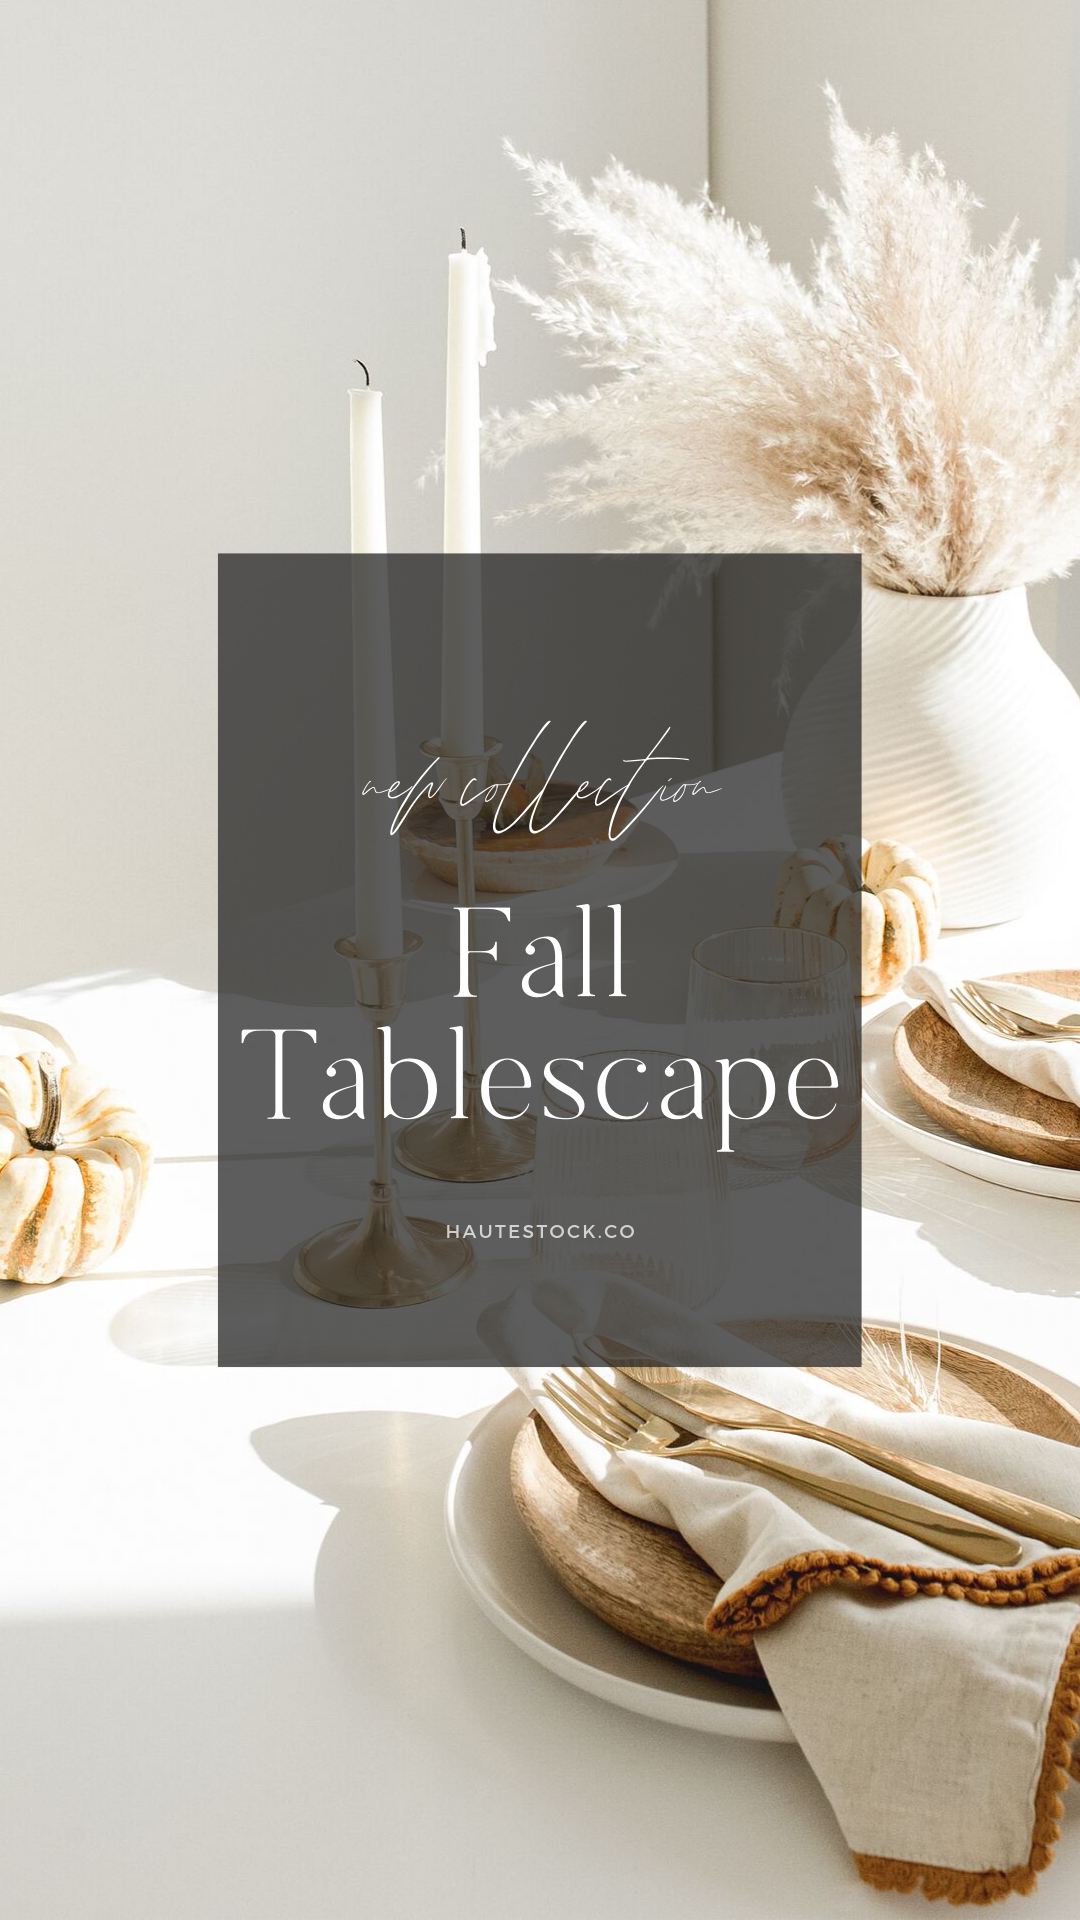 Warm neutral Fall tablescape decor stock photos that are perfect for Thanksgiving and Fall decorating posts. Exclusively from Haute Stock. Click to view the collection.